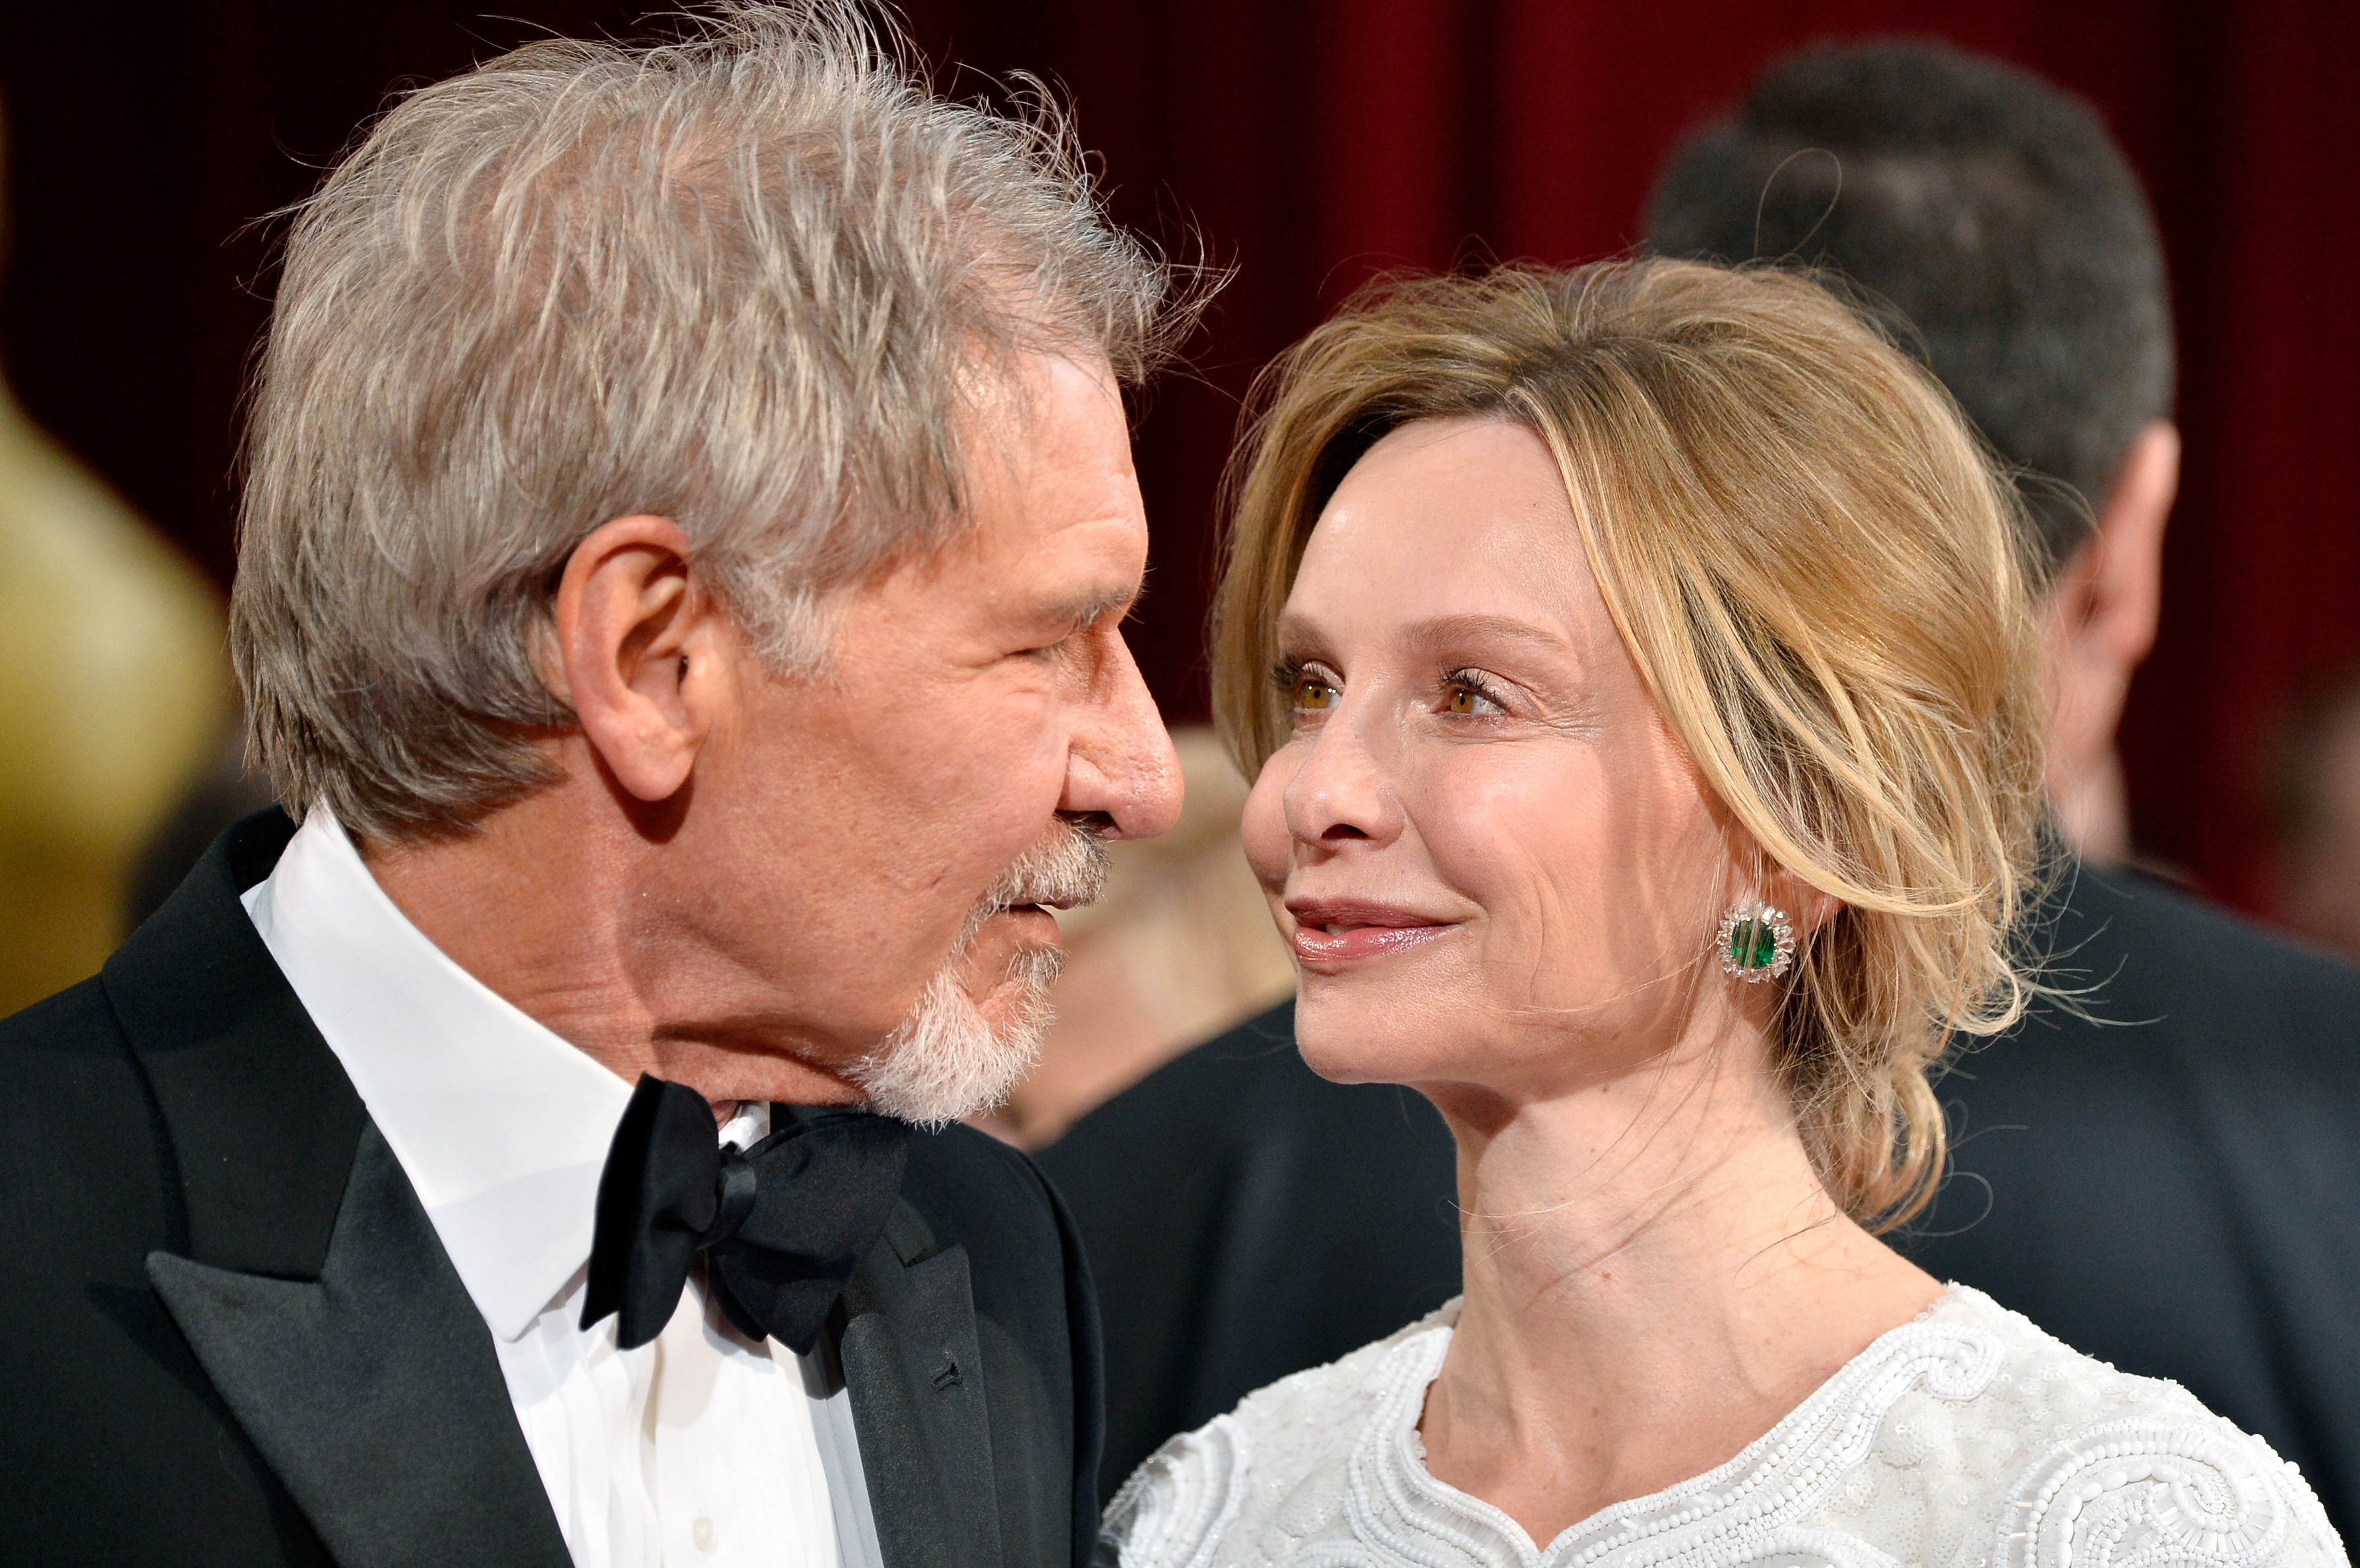 HOLLYWOOD, CA - MARCH 02:  Actors Harrison Ford (L) and Calista Flockhart attend the Oscars held at Hollywood & Highland Center on March 2, 2014 in Hollywood, California.  (Photo by Frazer Harrison/Getty Images)